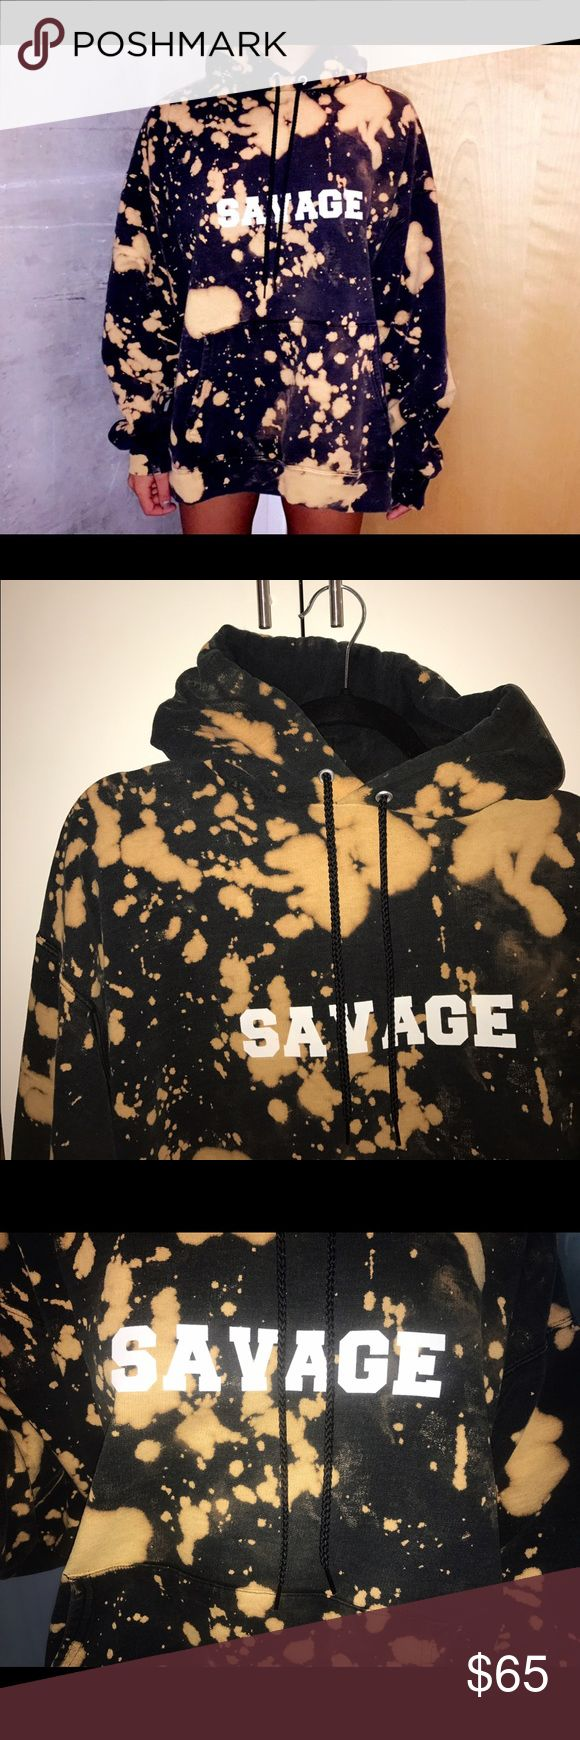 Savage Bleached Sweatshirt Black bleached sweatshirt. Size large. (made by me, tagged brand for style) Yeezy Tops Sweatshirts & Hoodies